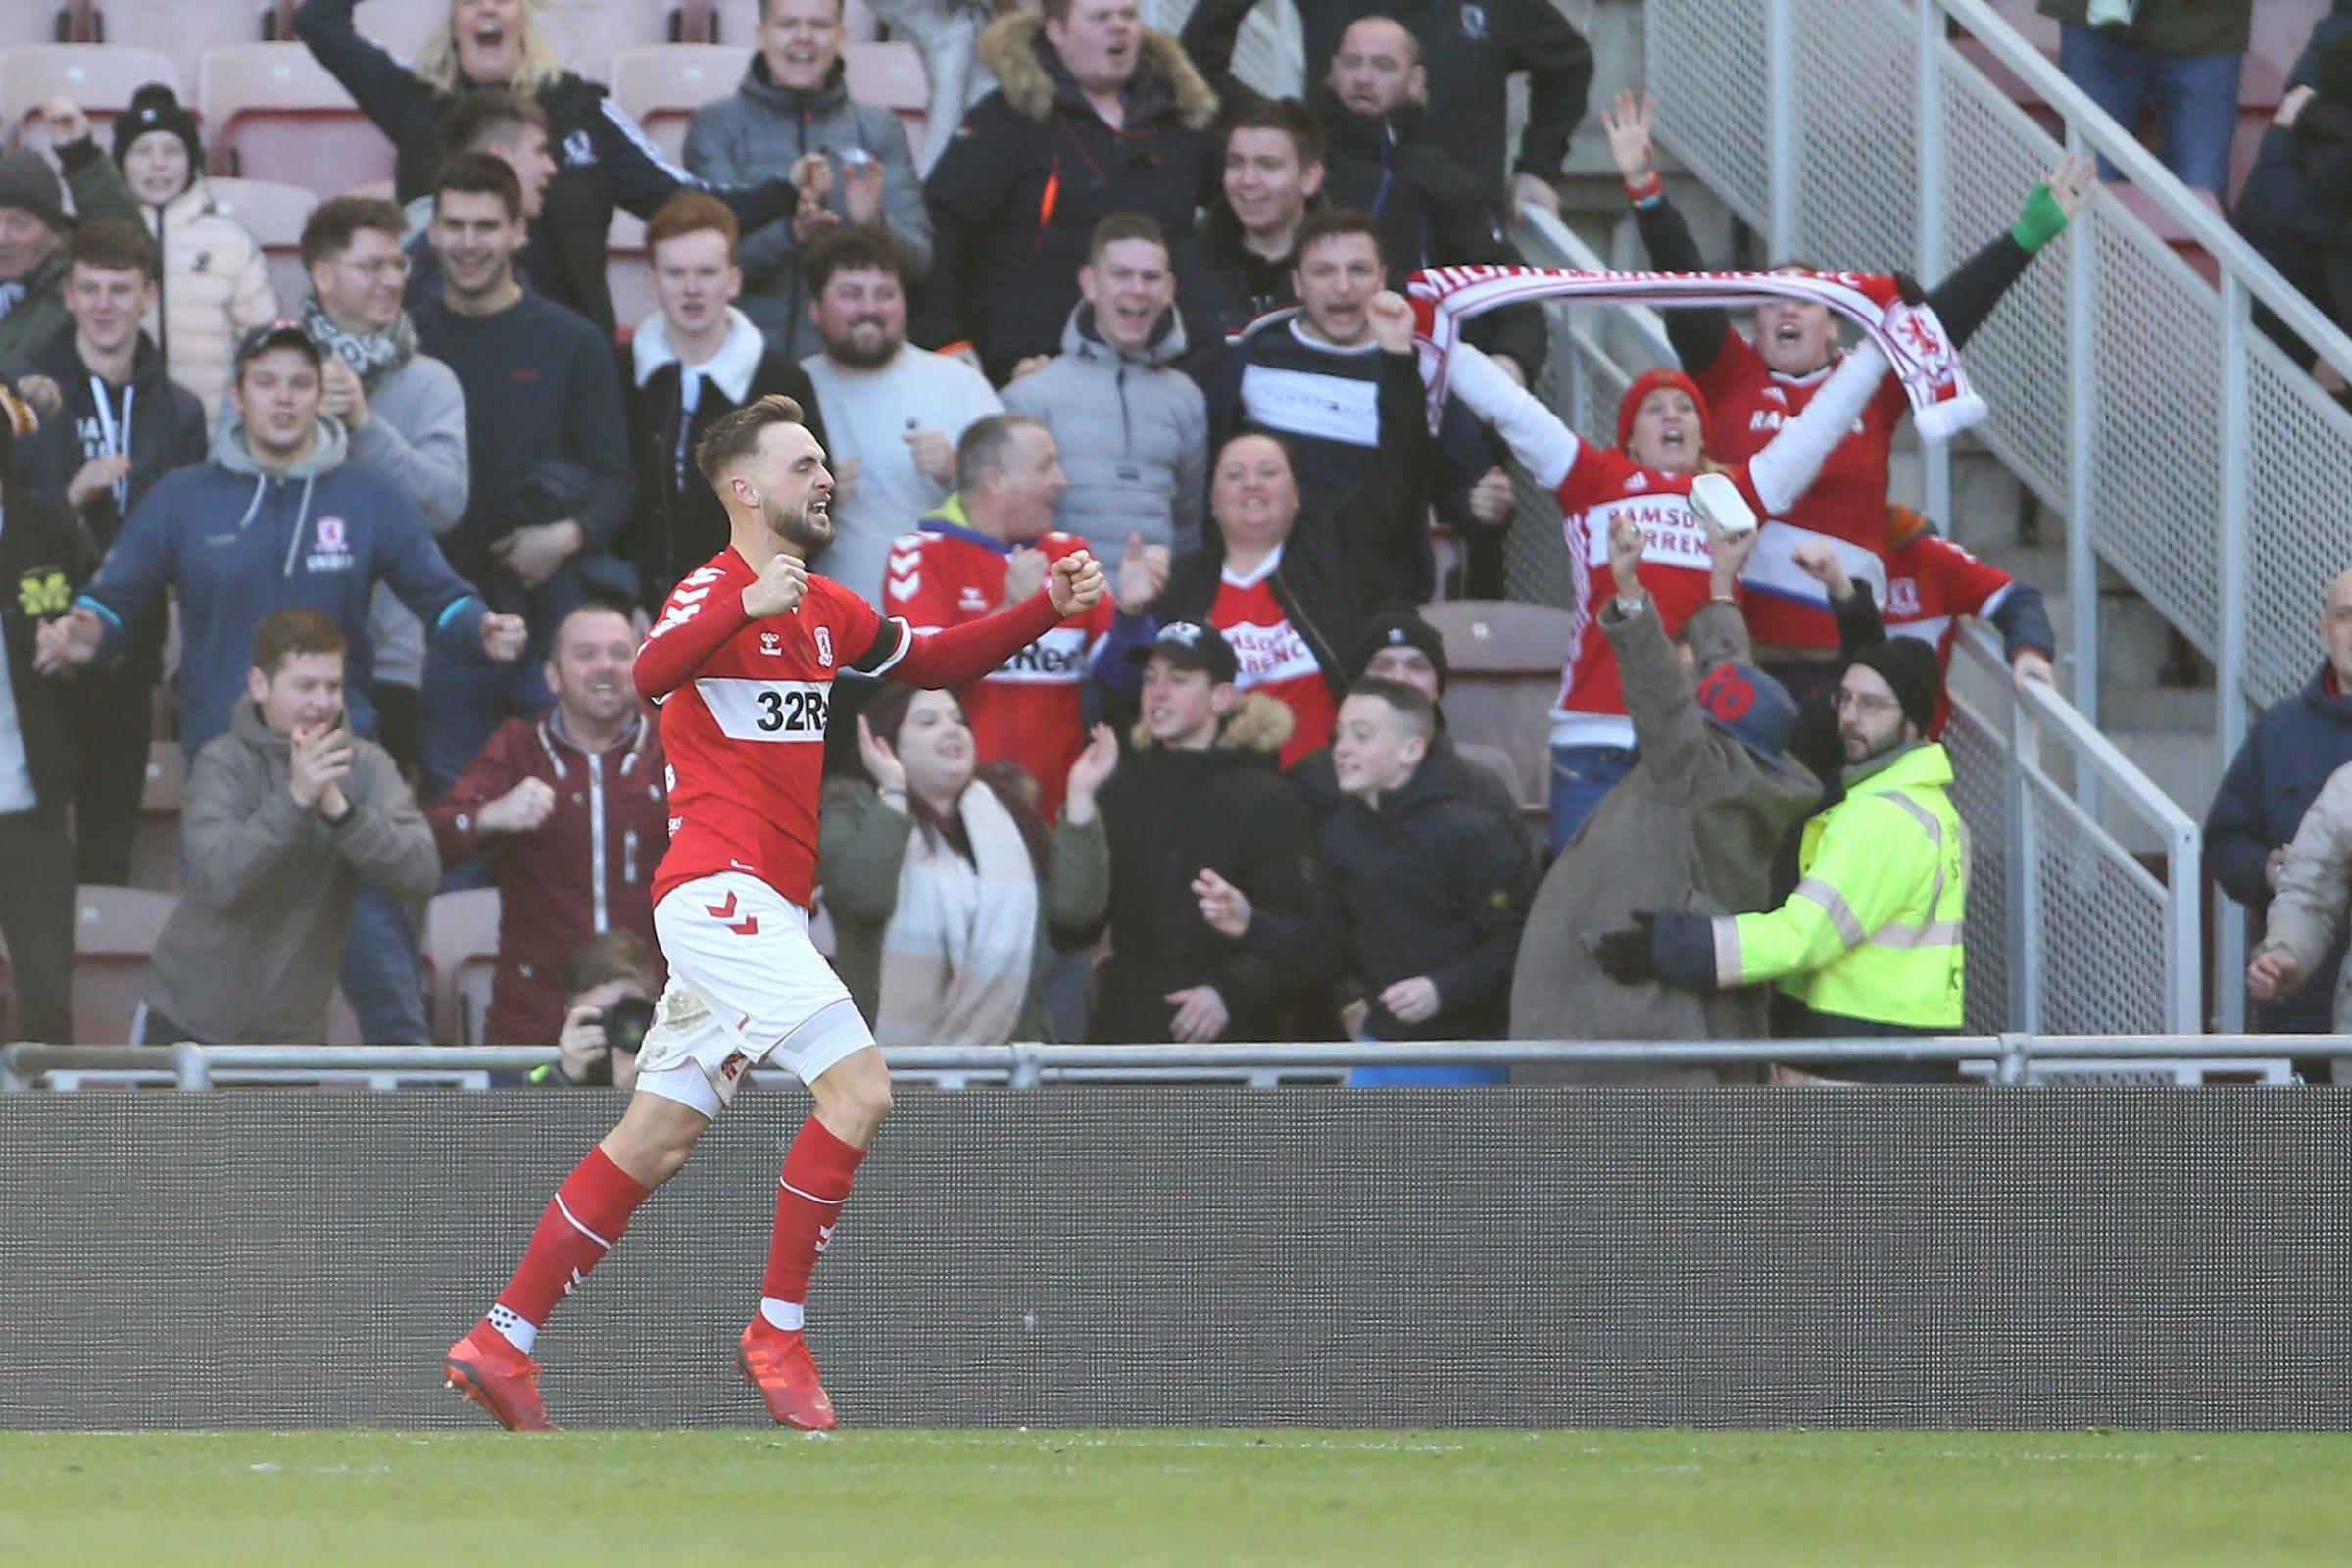 Boro hoping for a boost from Wing ahead of Blades trip